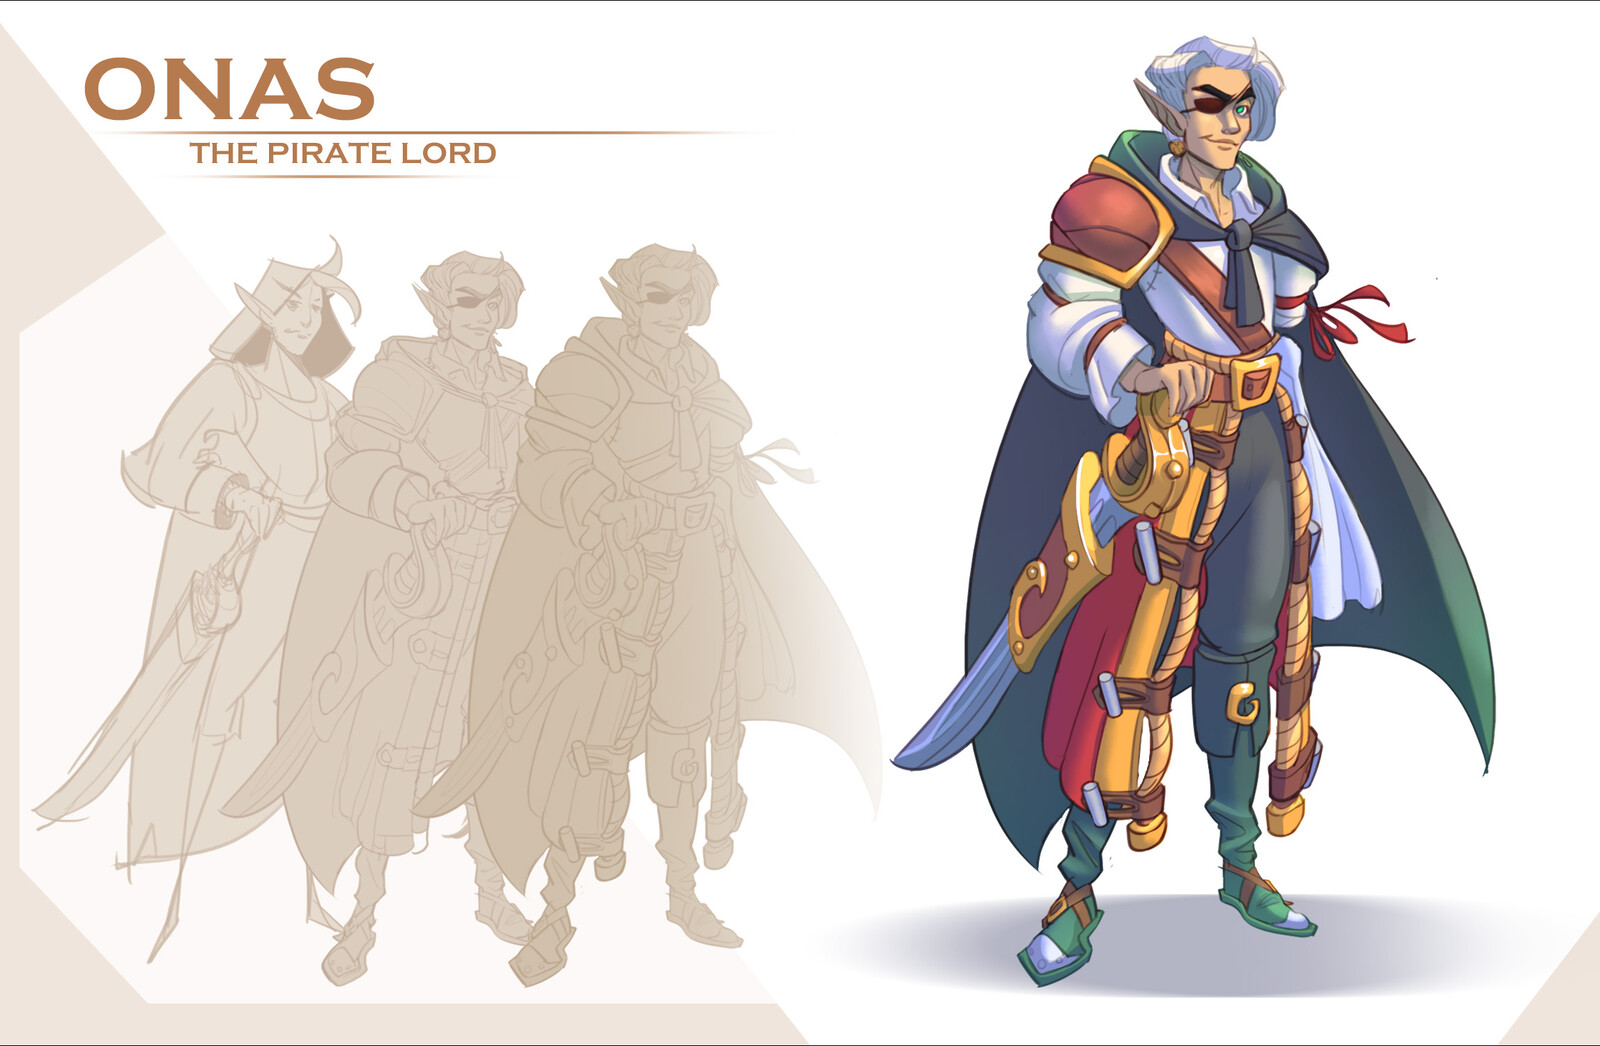 Onas The Pirate Lord